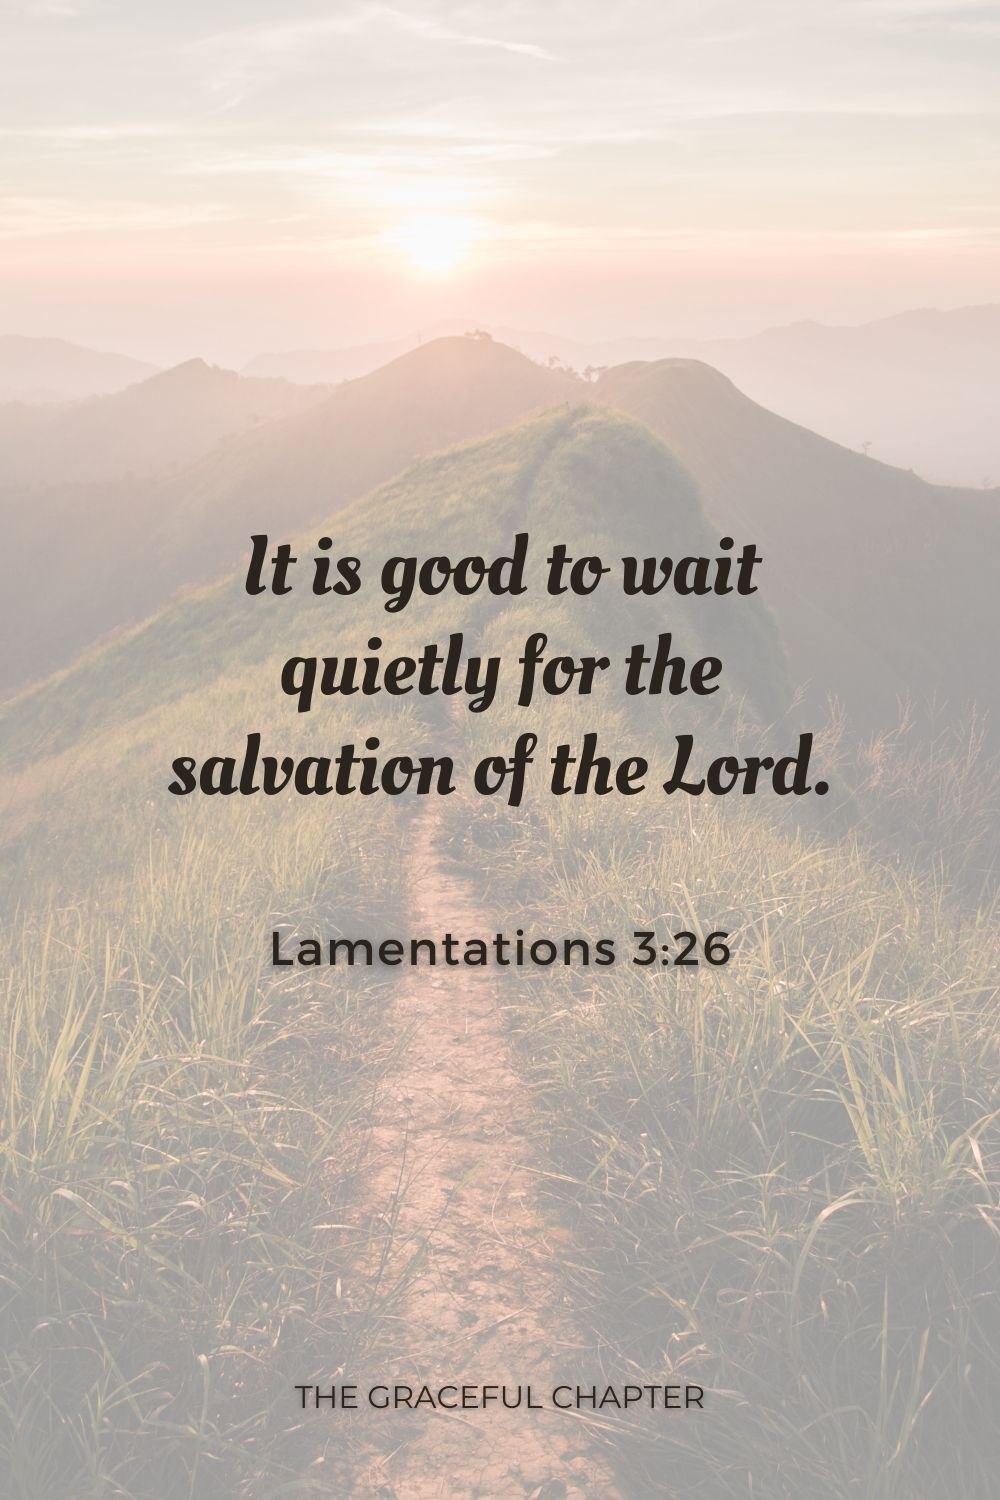 It is good to wait quietly for the salvation of the Lord. Lamentations 3:26